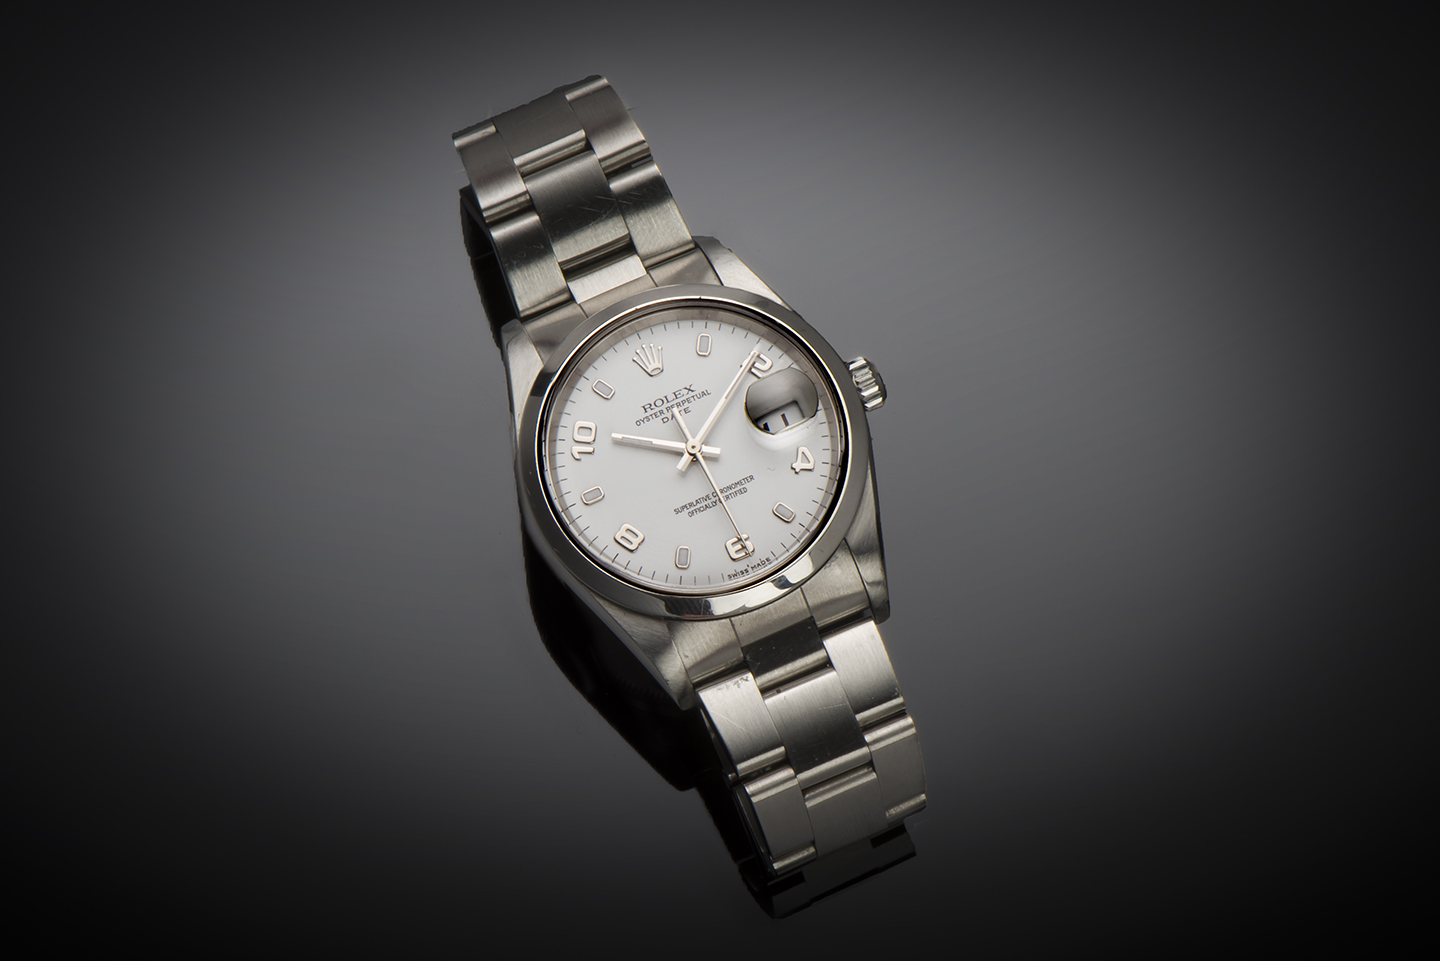 Montre Rolex Oyster Perpetual Date-1